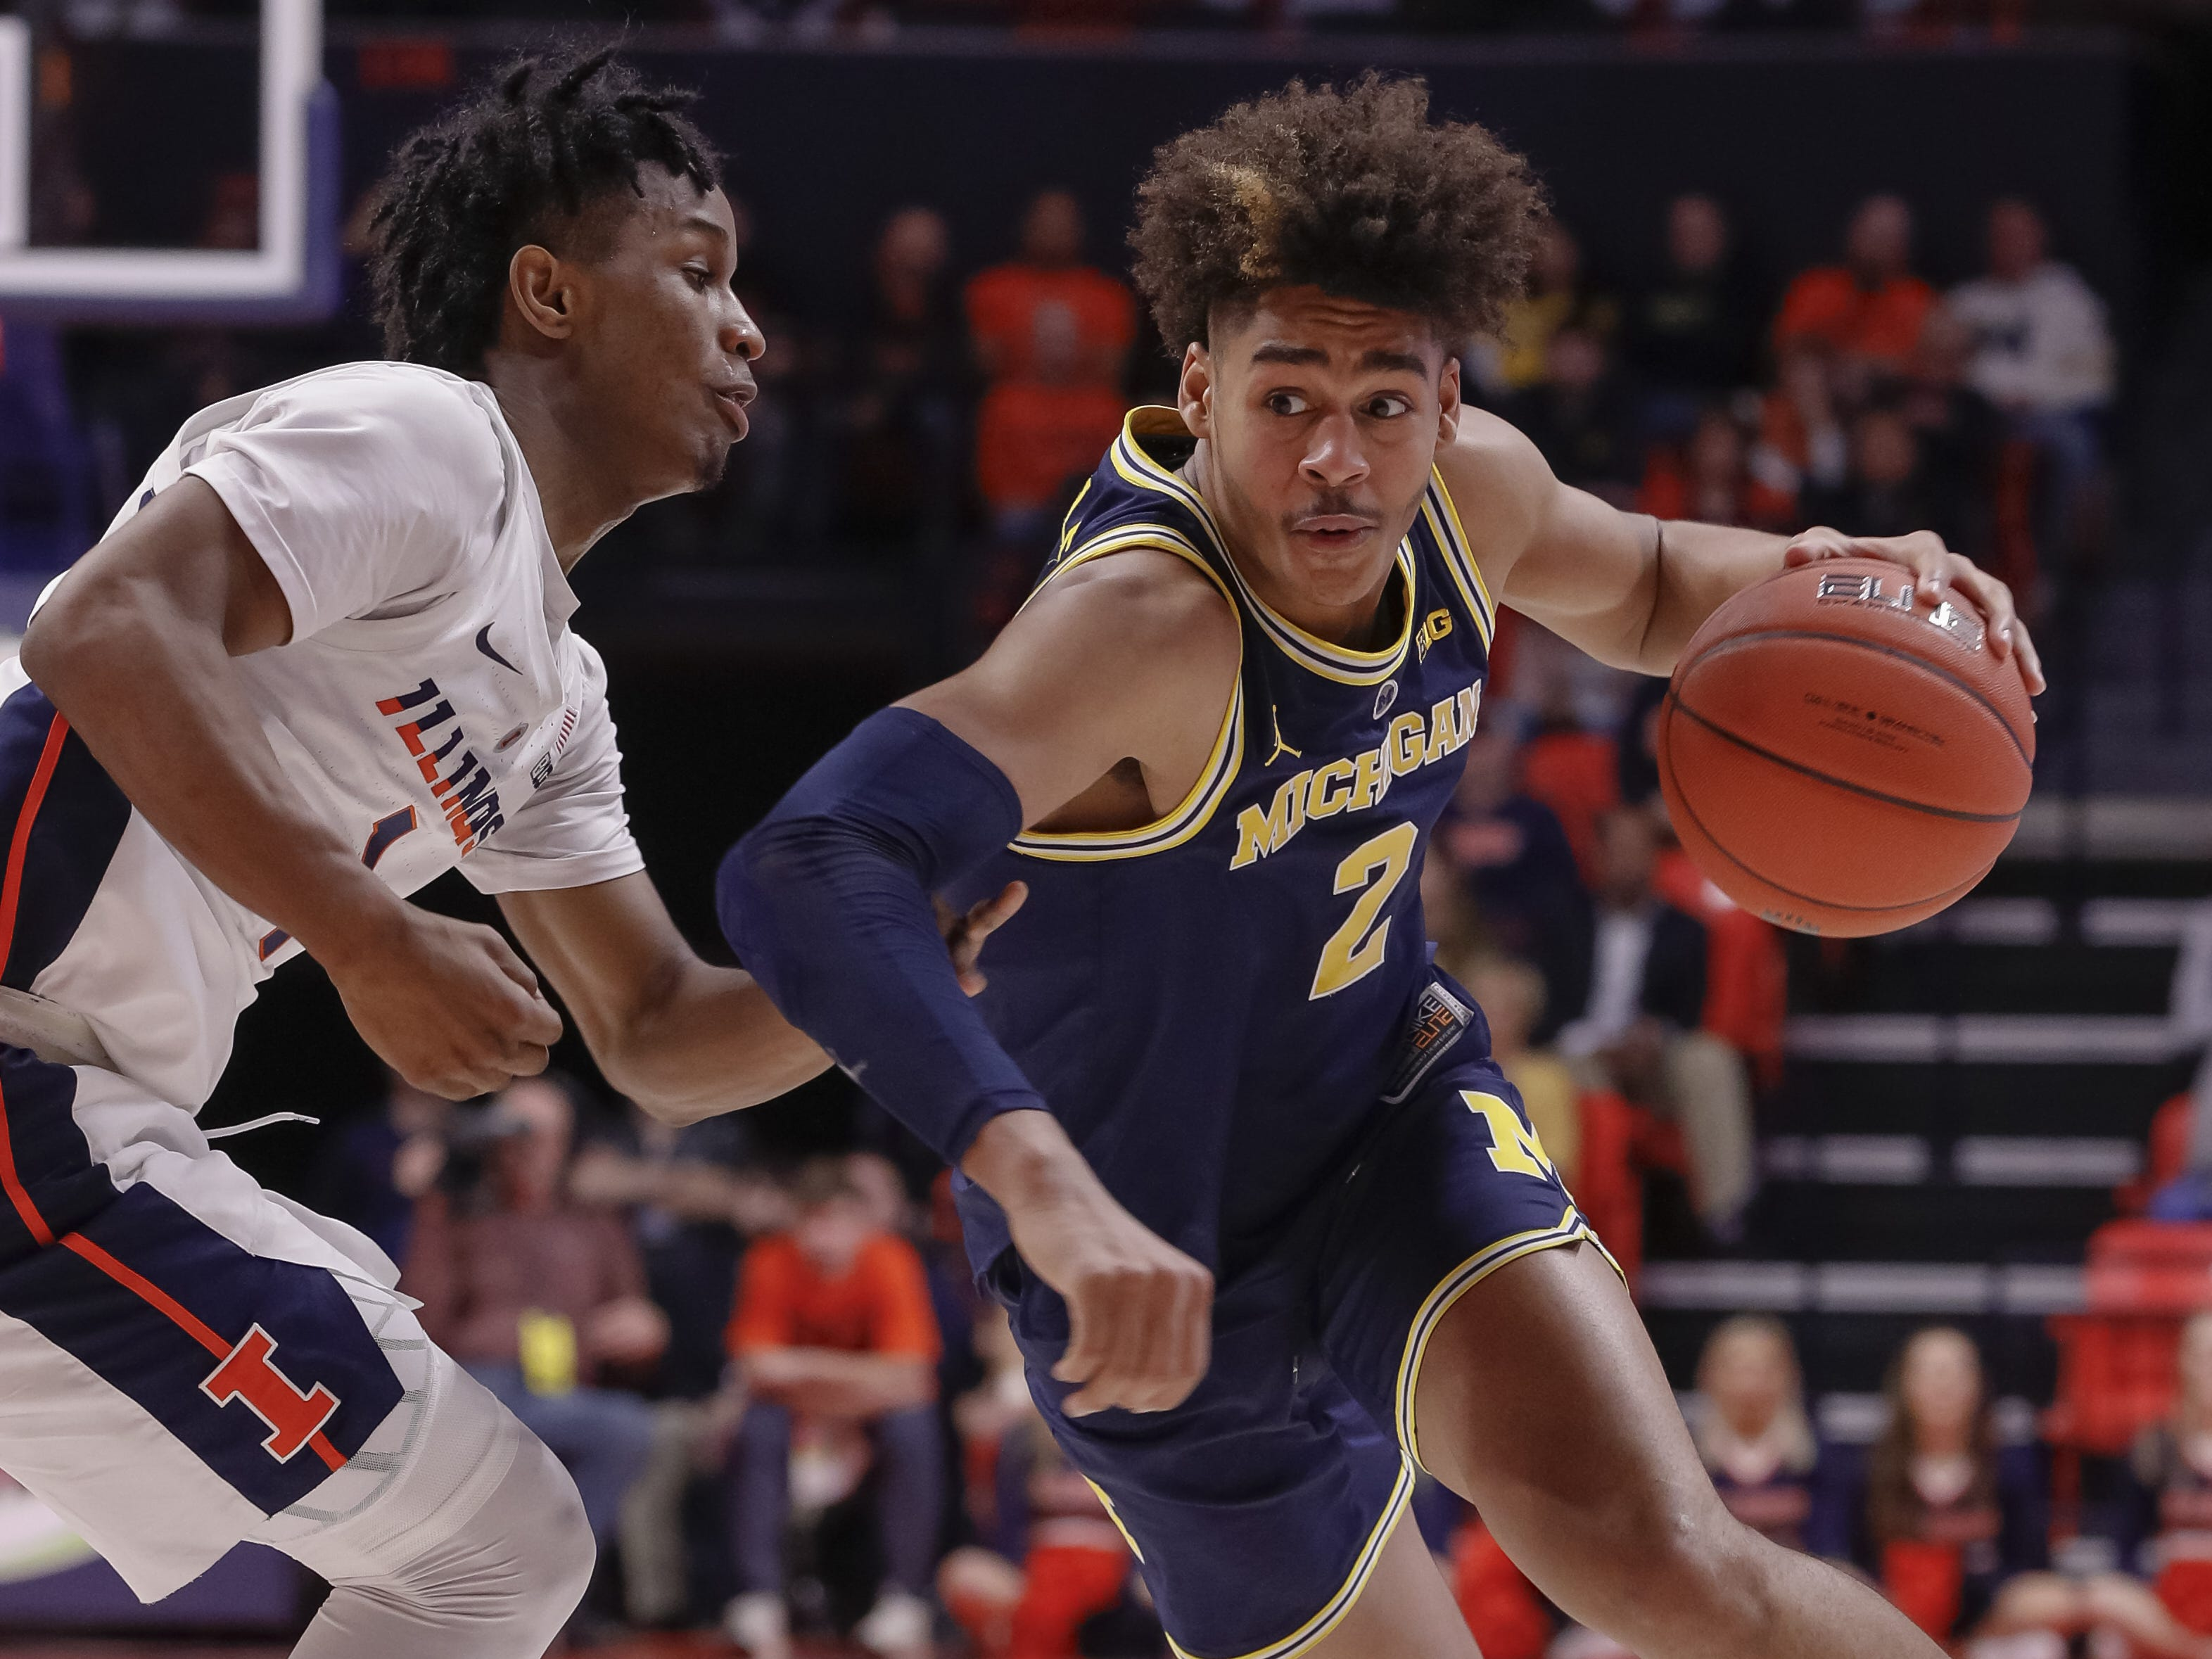 Michigan guard Jordan Poole drives to the basket against Illinois' Trent Frazier during the second half of U-M's 79-69 win on Thursday, Jan. 10, 2019, in Champaign, Ill.